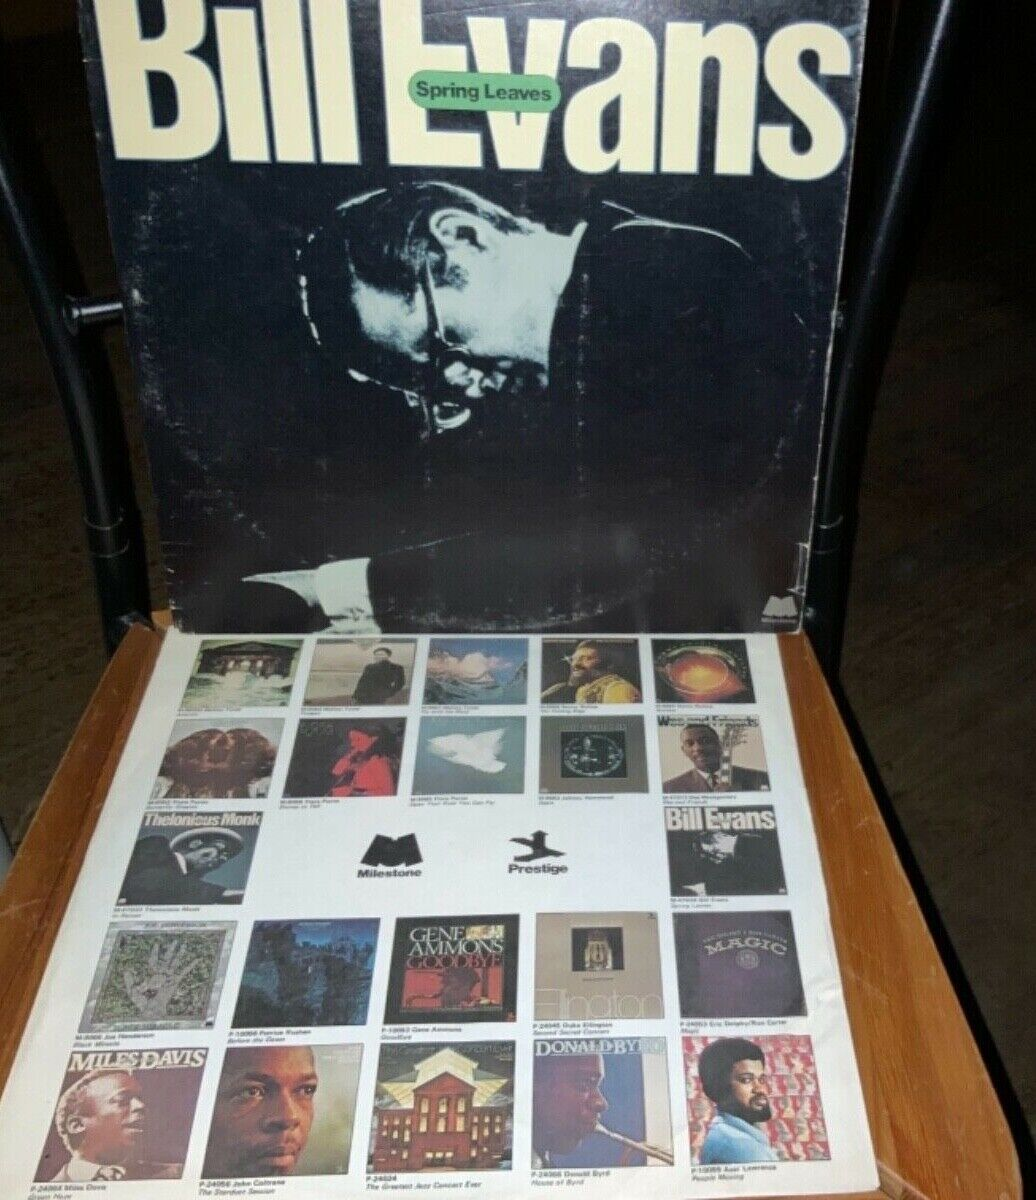 BILL EVANS Spring Leaves JAZZ 2xLP MILESTONE VG/VG  - $14.99